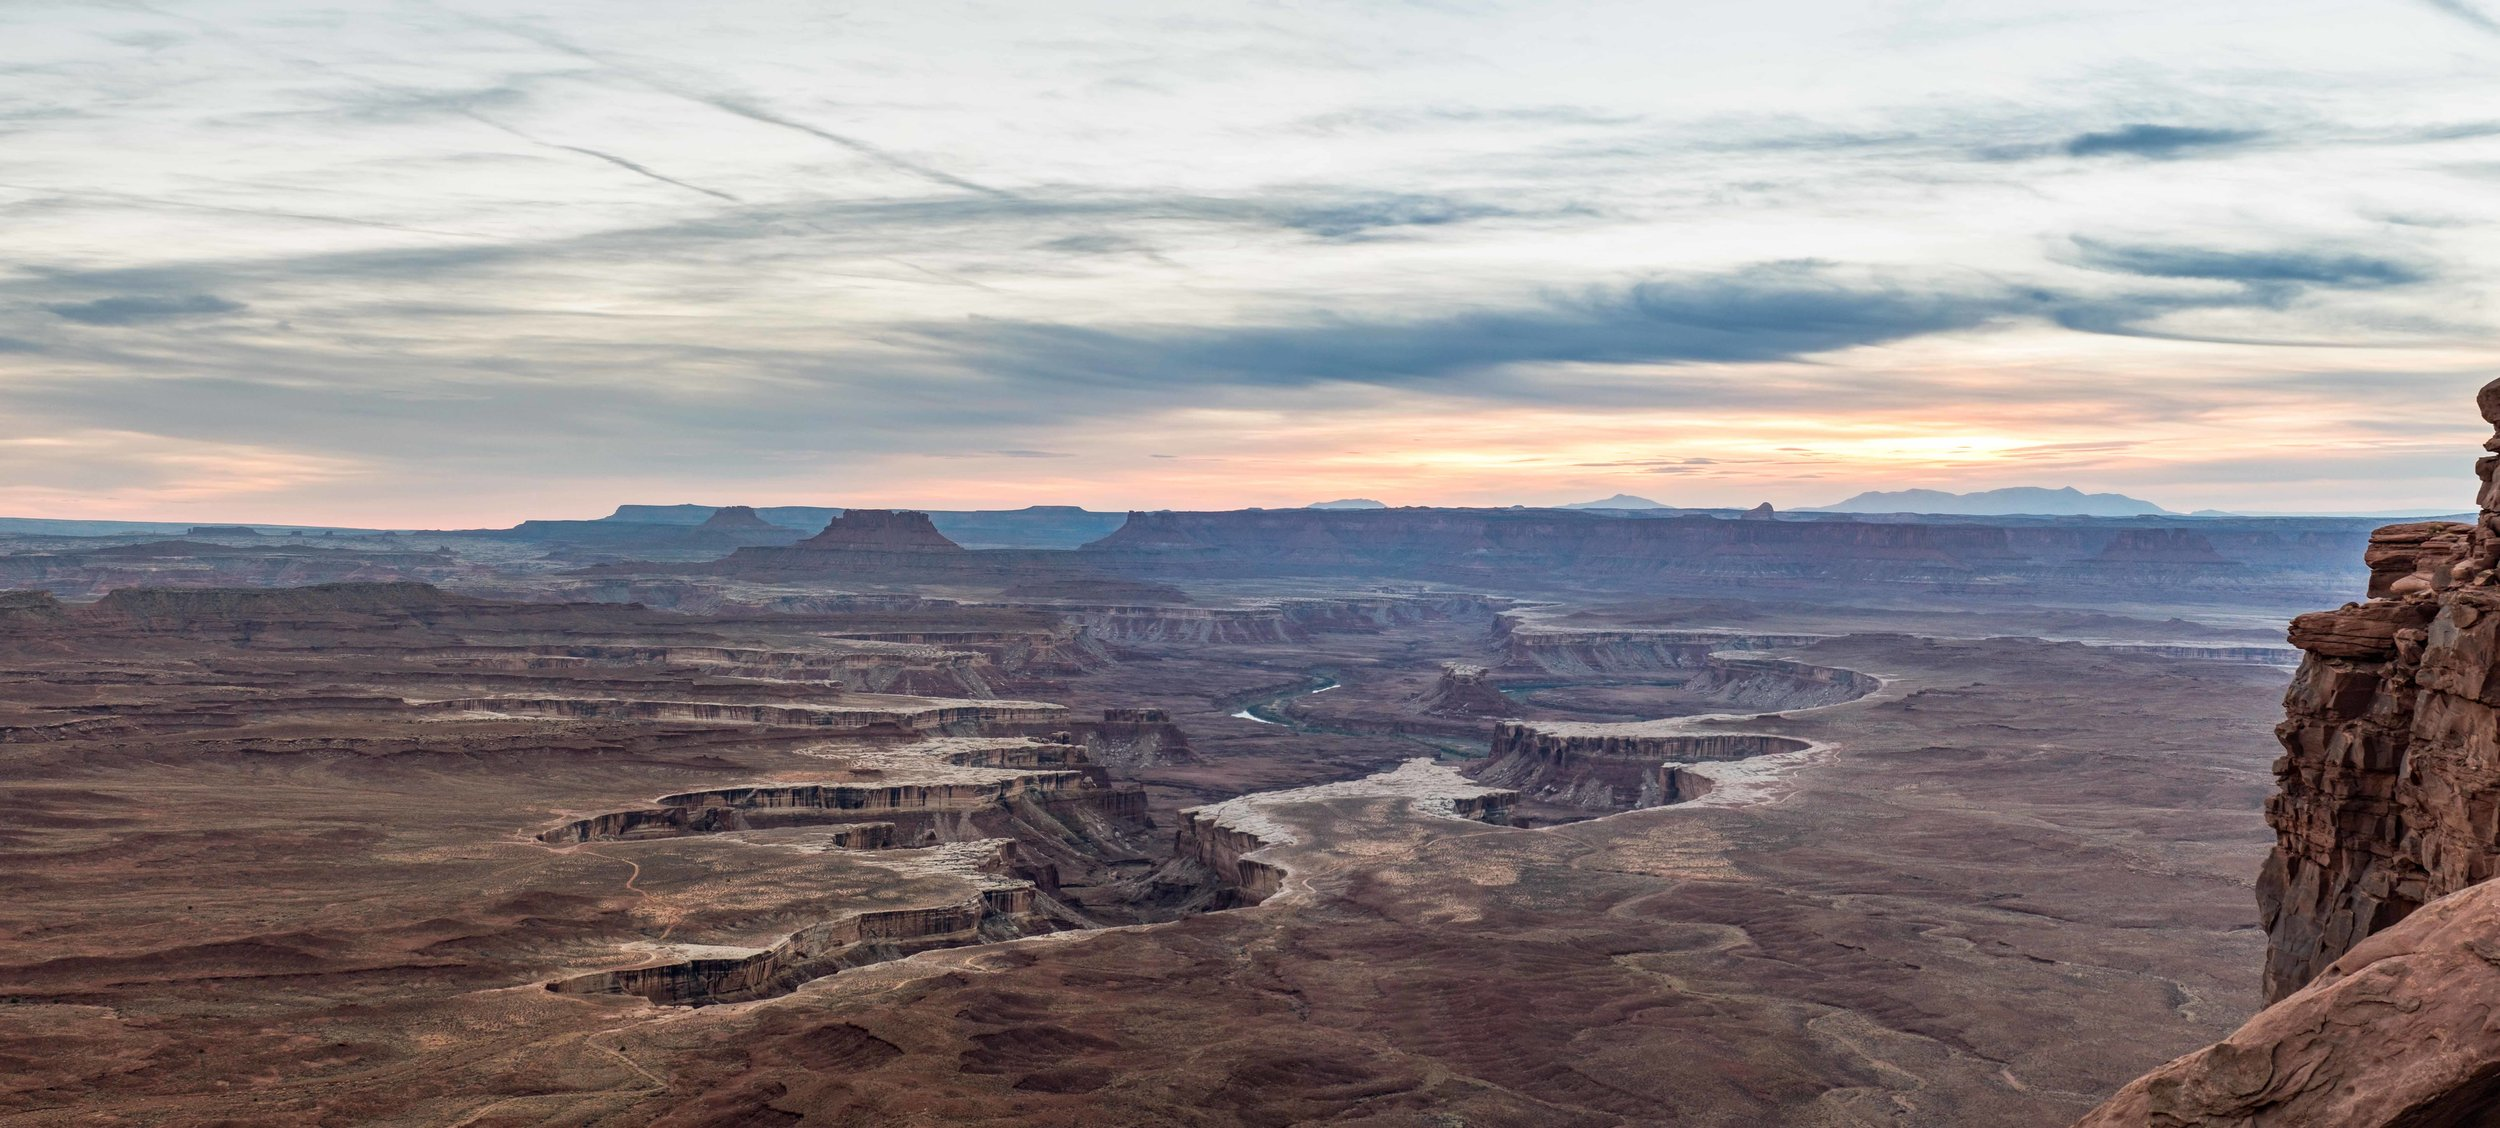 From the Grand View Point, you can see the depth and breadth of the canyon ecosystem.